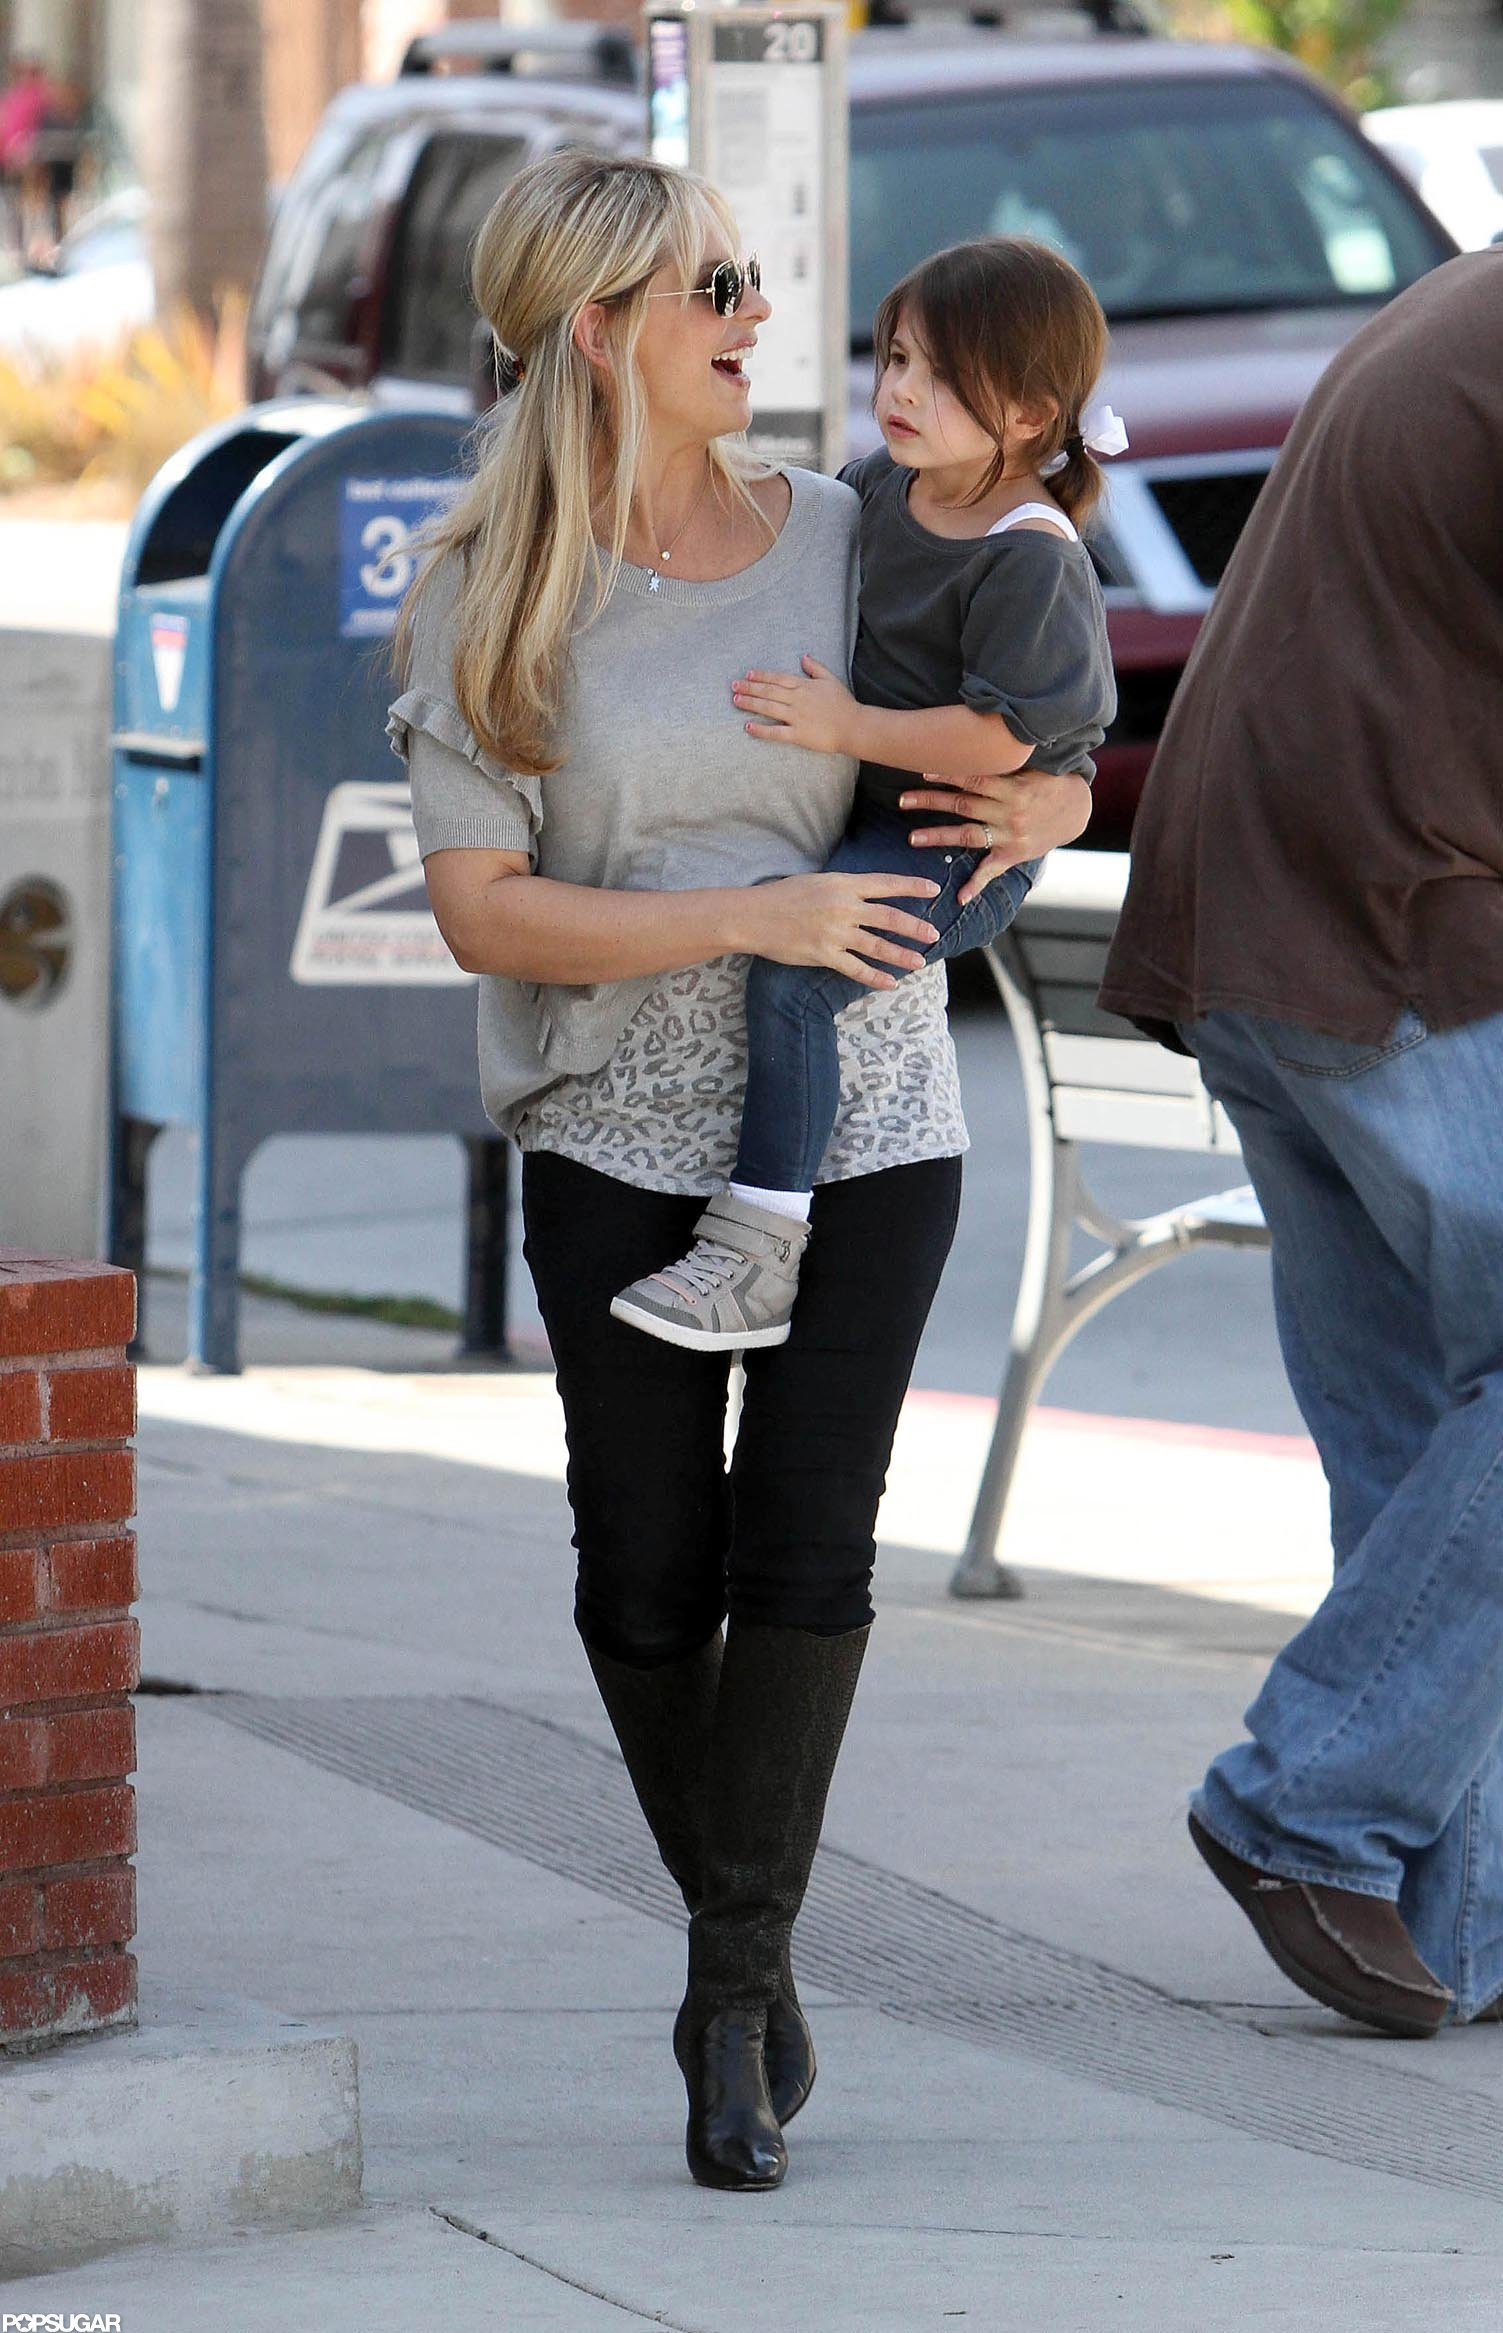 Sarah Michelle Gellar stepped out with Charlotte after giving birth to her son.